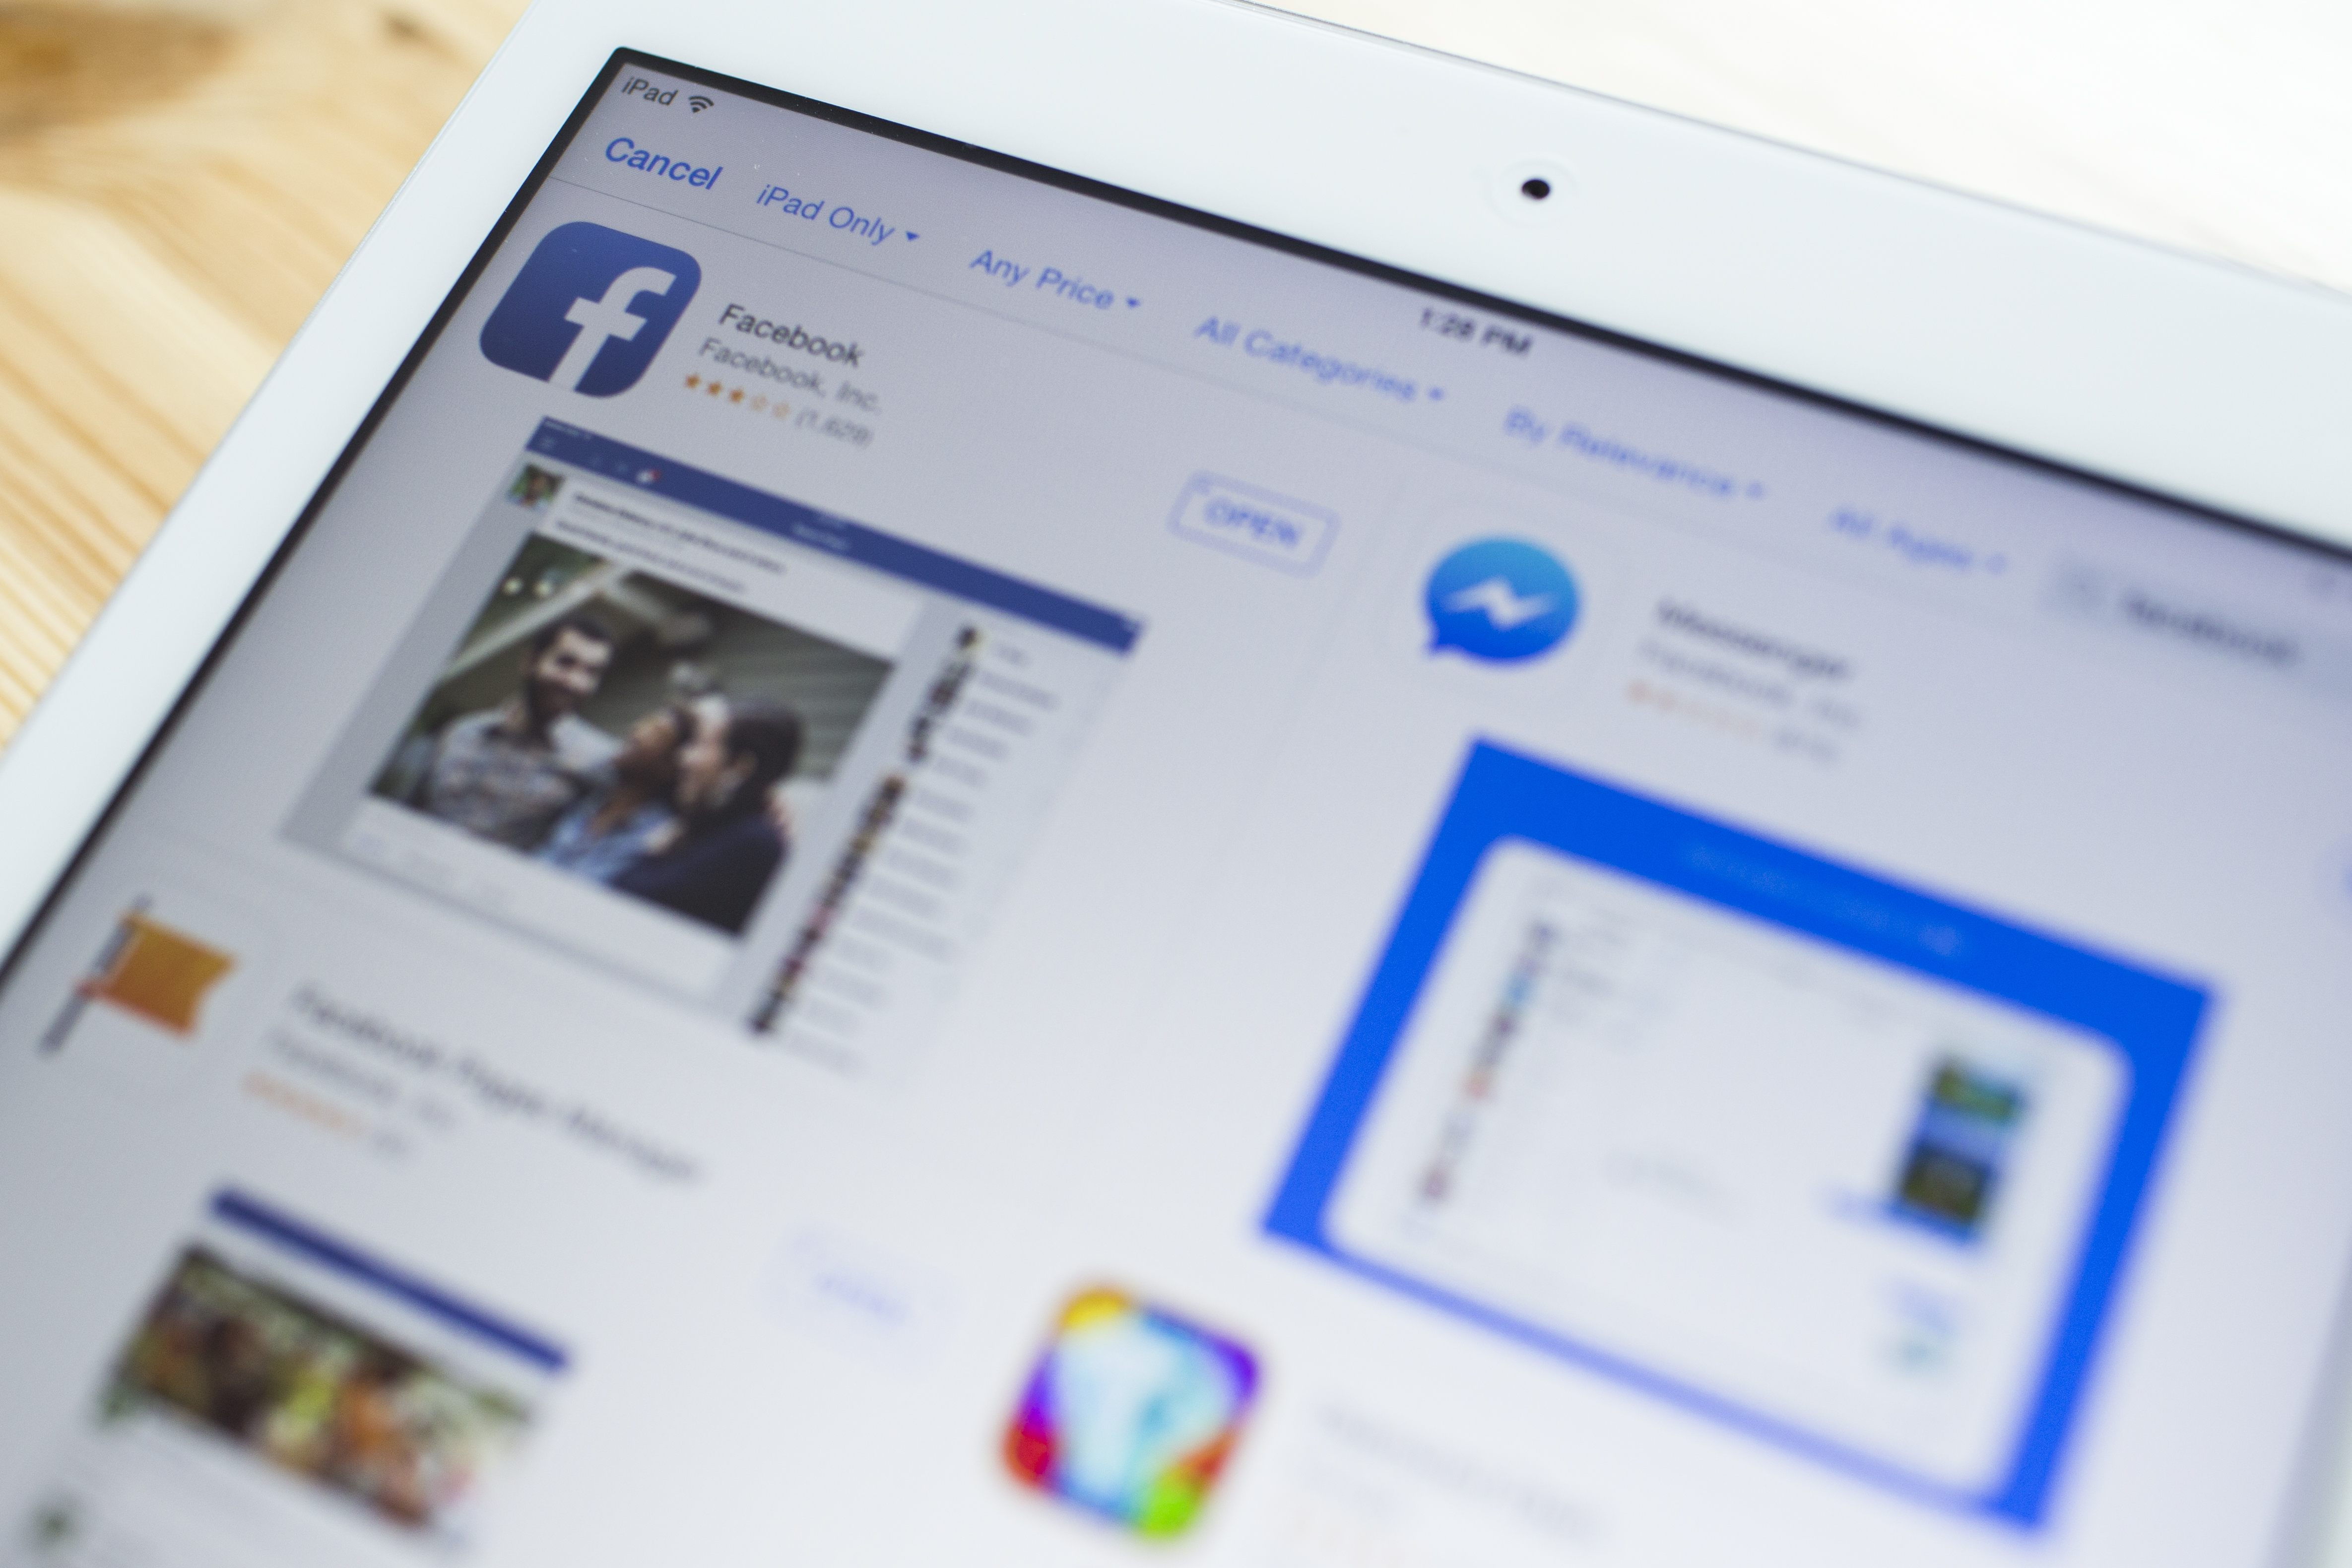 Why Your FaceBook Account Got Banned